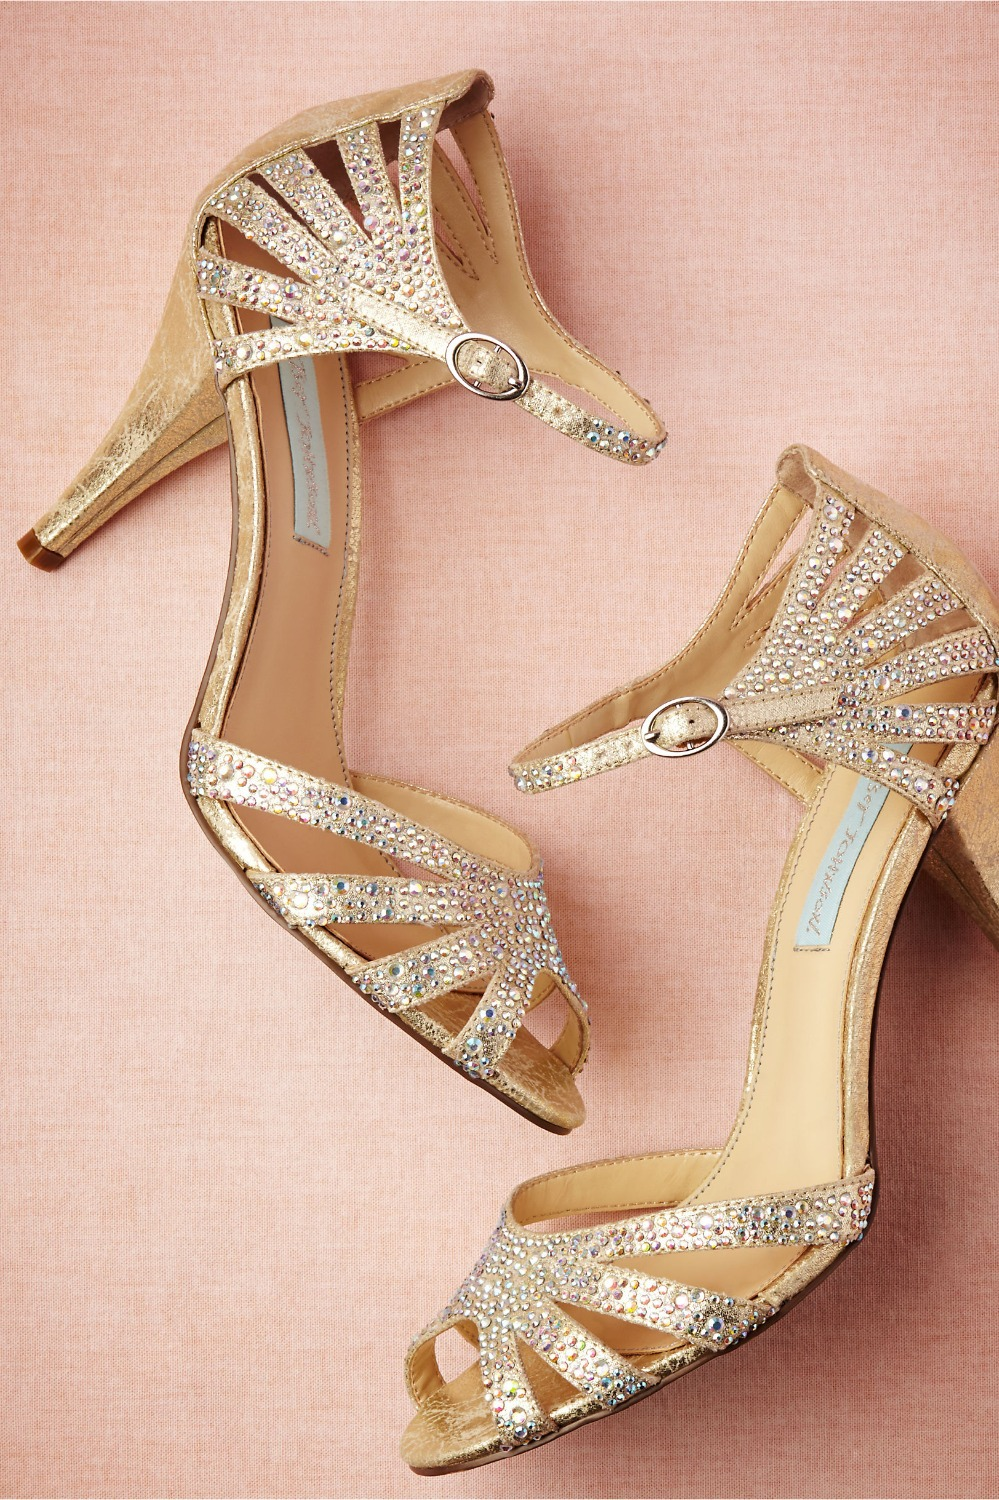 Sandals shoes comfortable - Cute Heels For Cheap Online